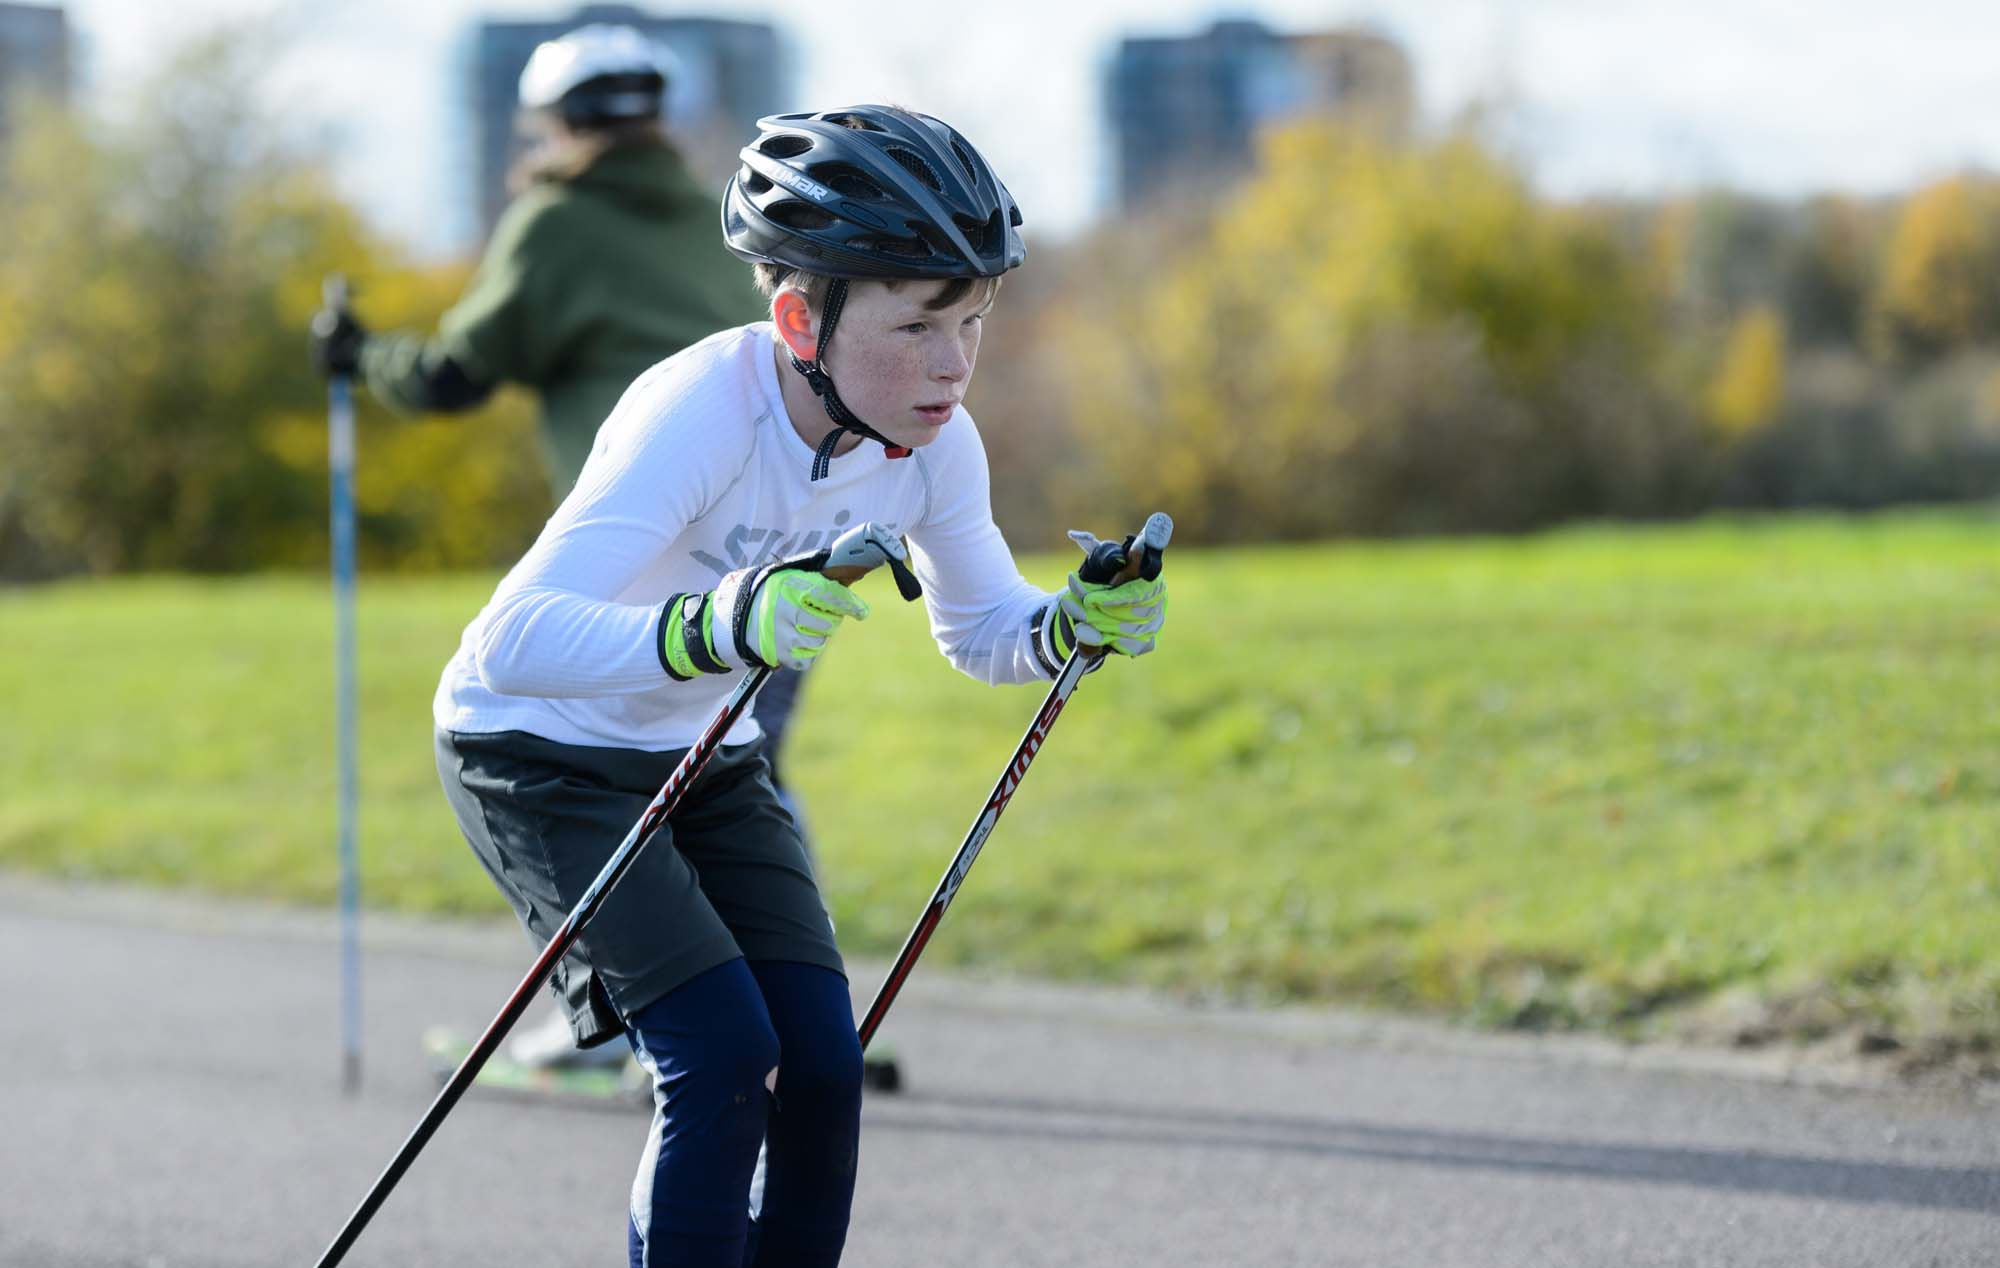 A boy trains in nordic skiing